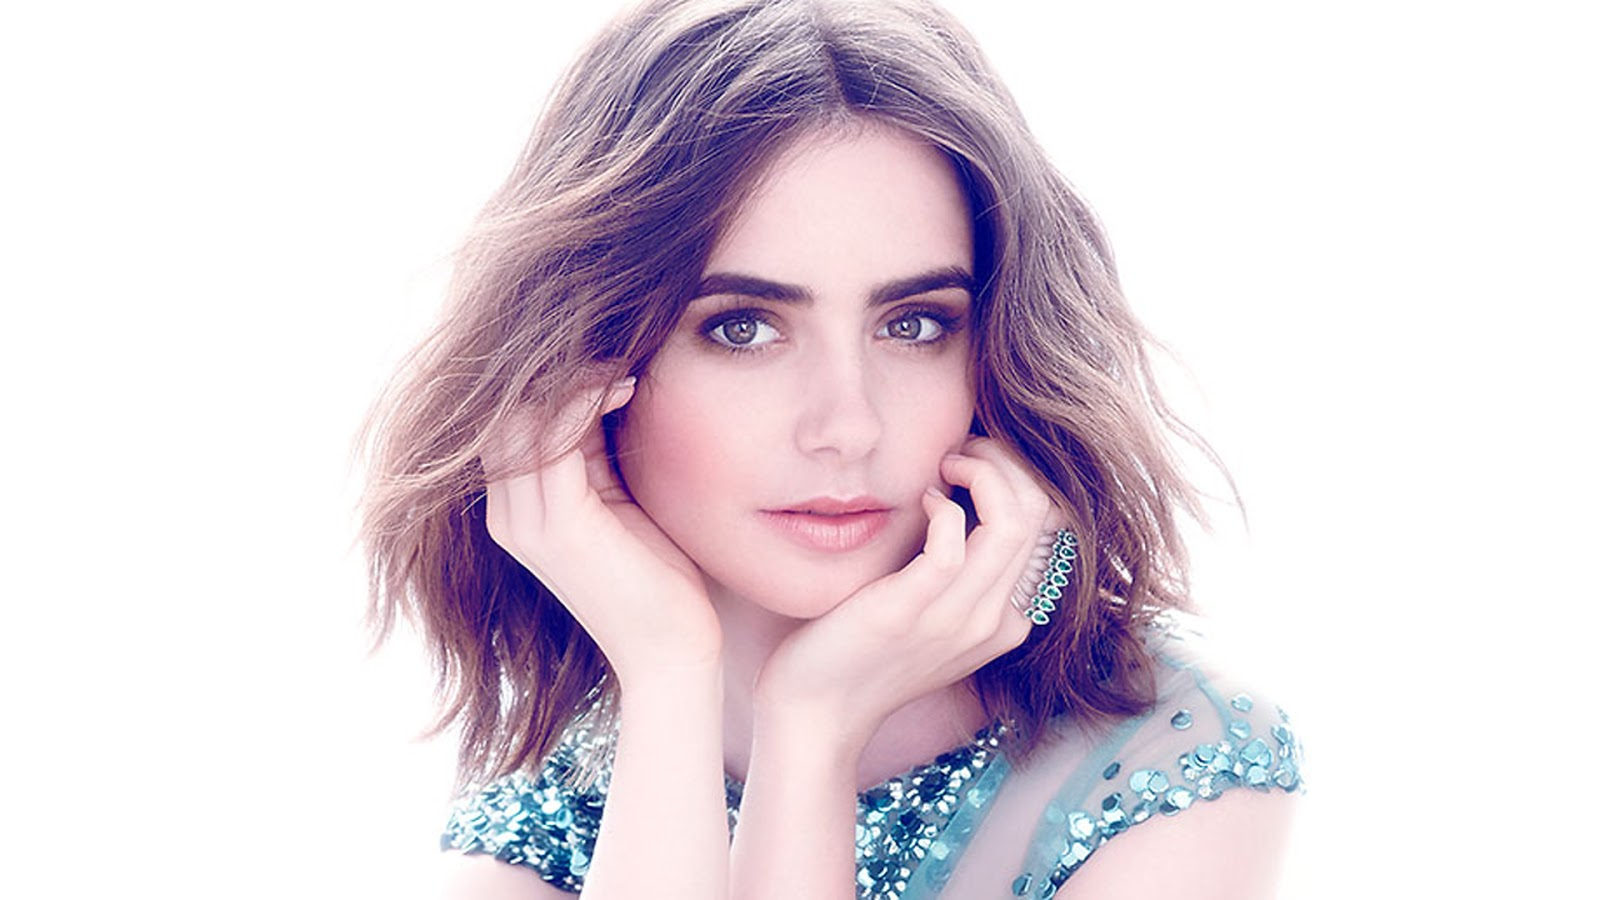 photos of stunning beauty british american actress and